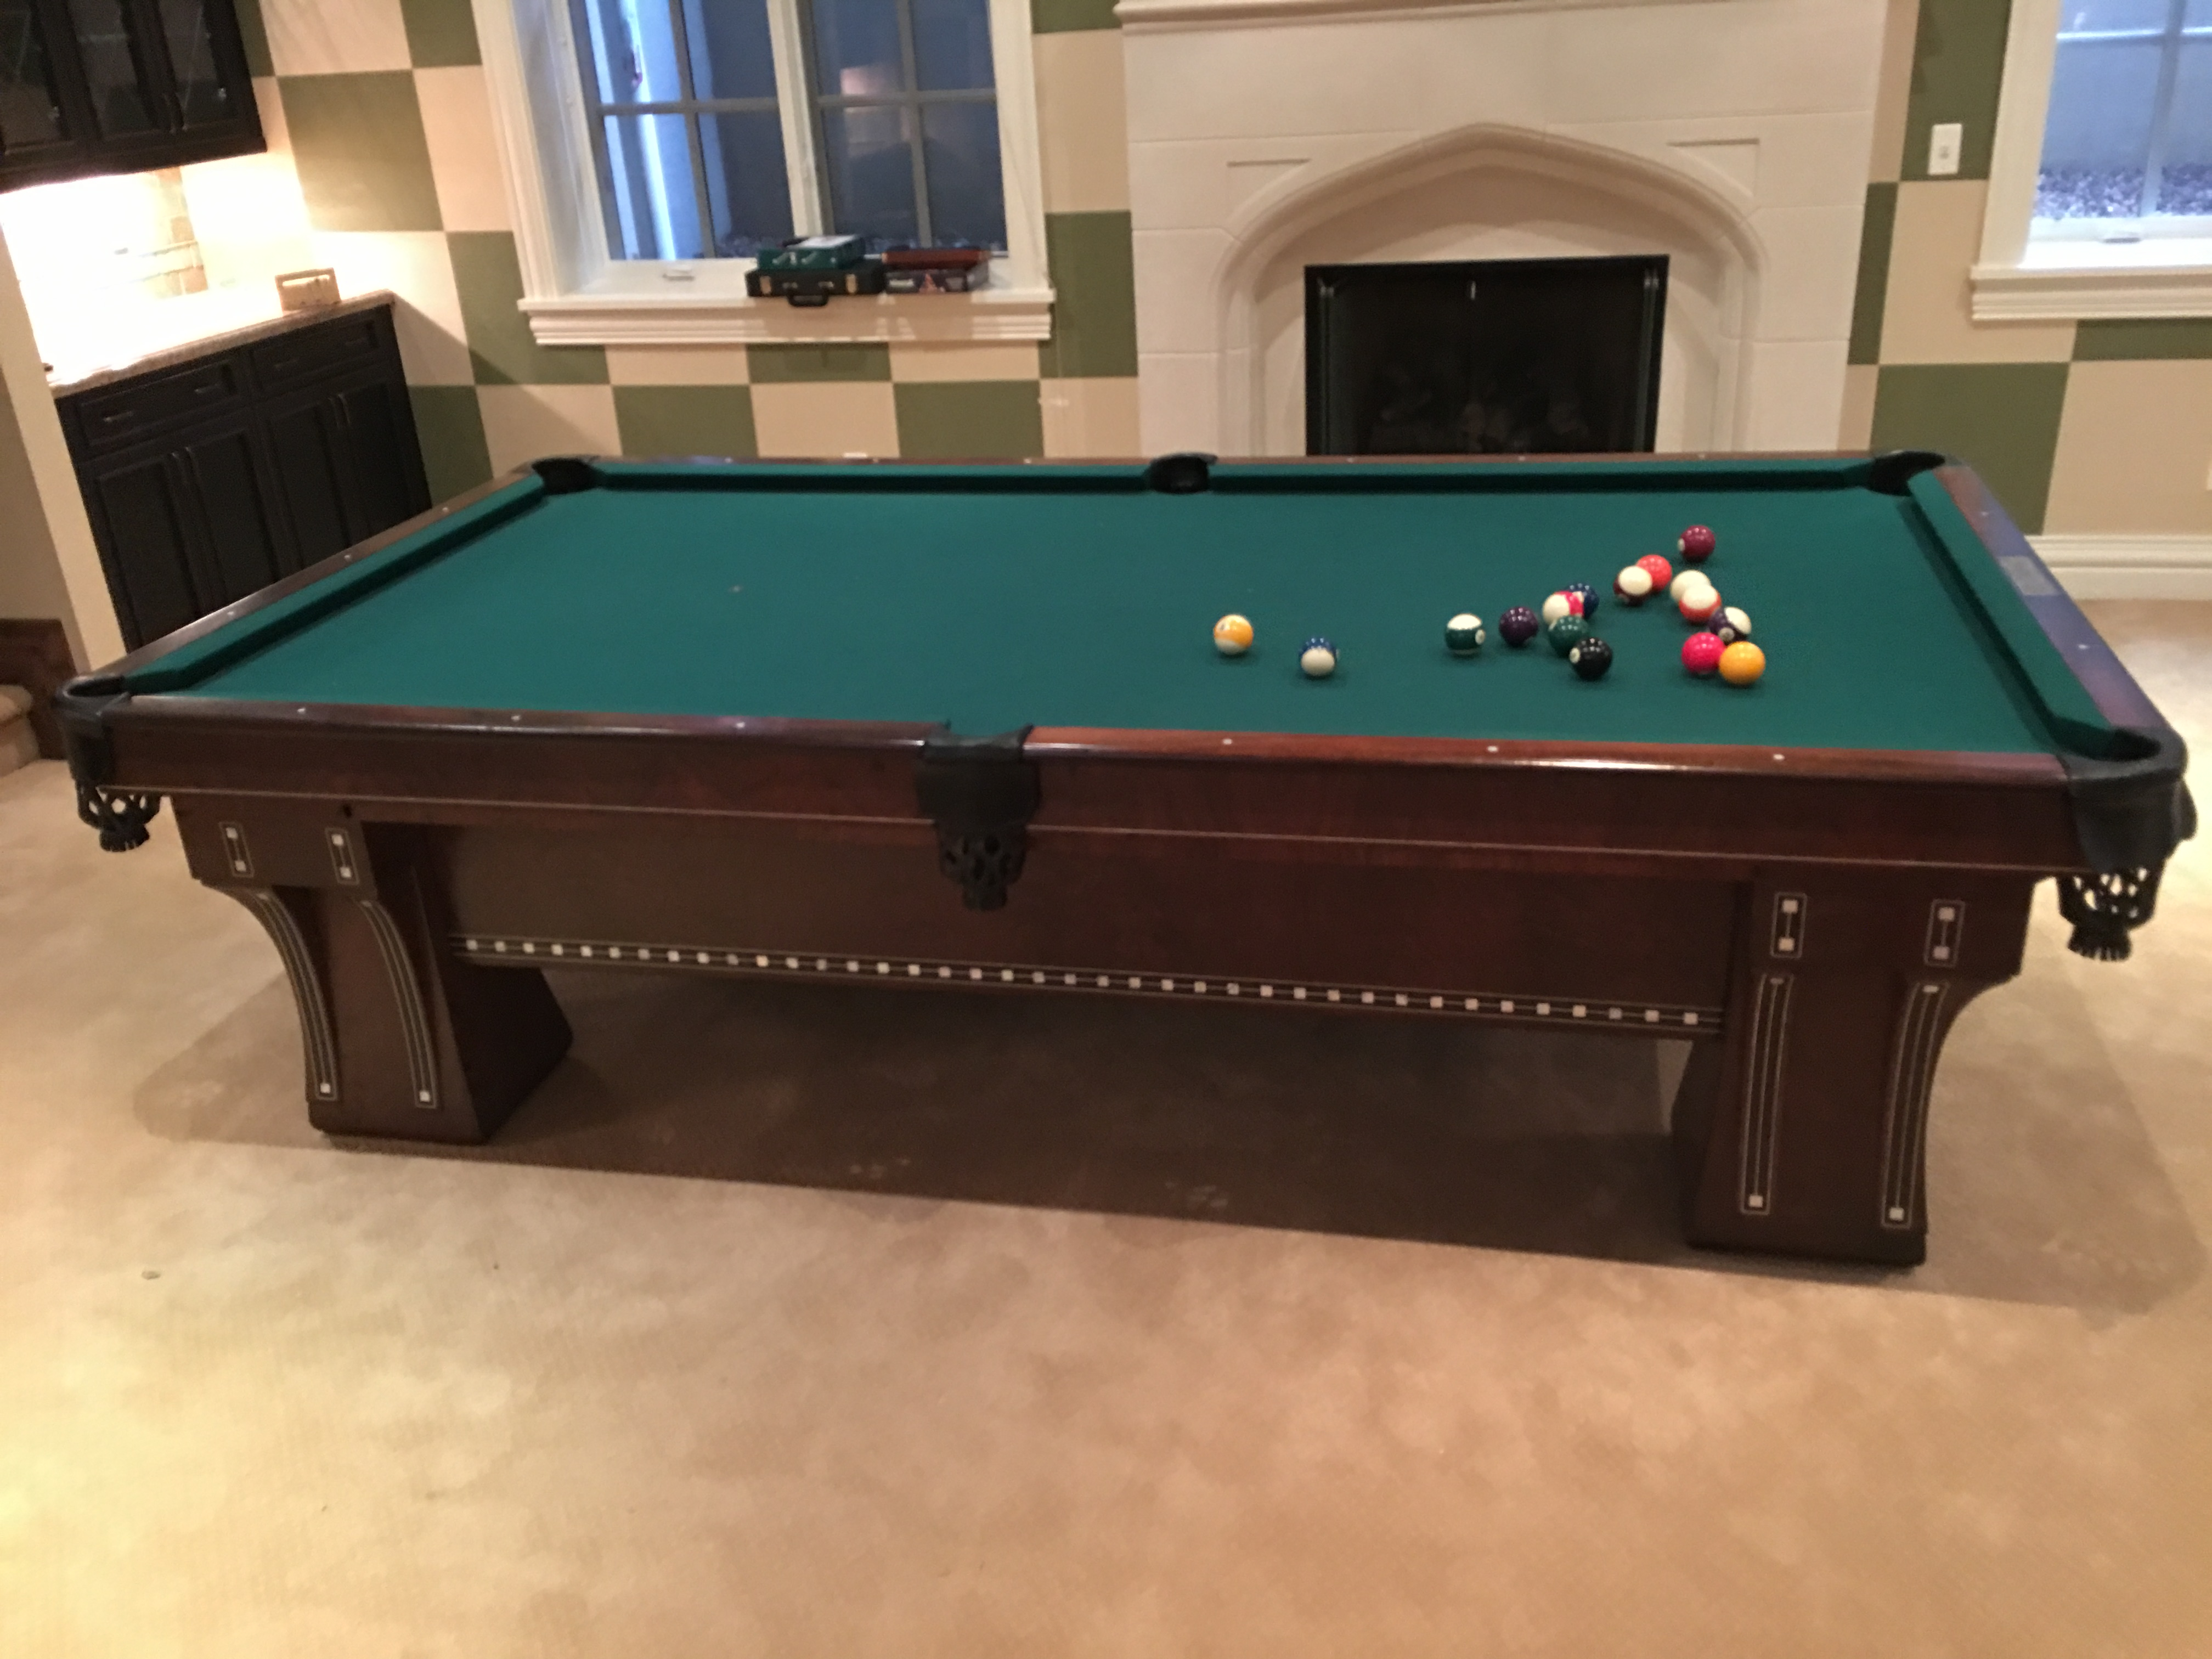 Cool Blog Pool Table Repairs In Denver Co The Pool Table Experts Download Free Architecture Designs Scobabritishbridgeorg